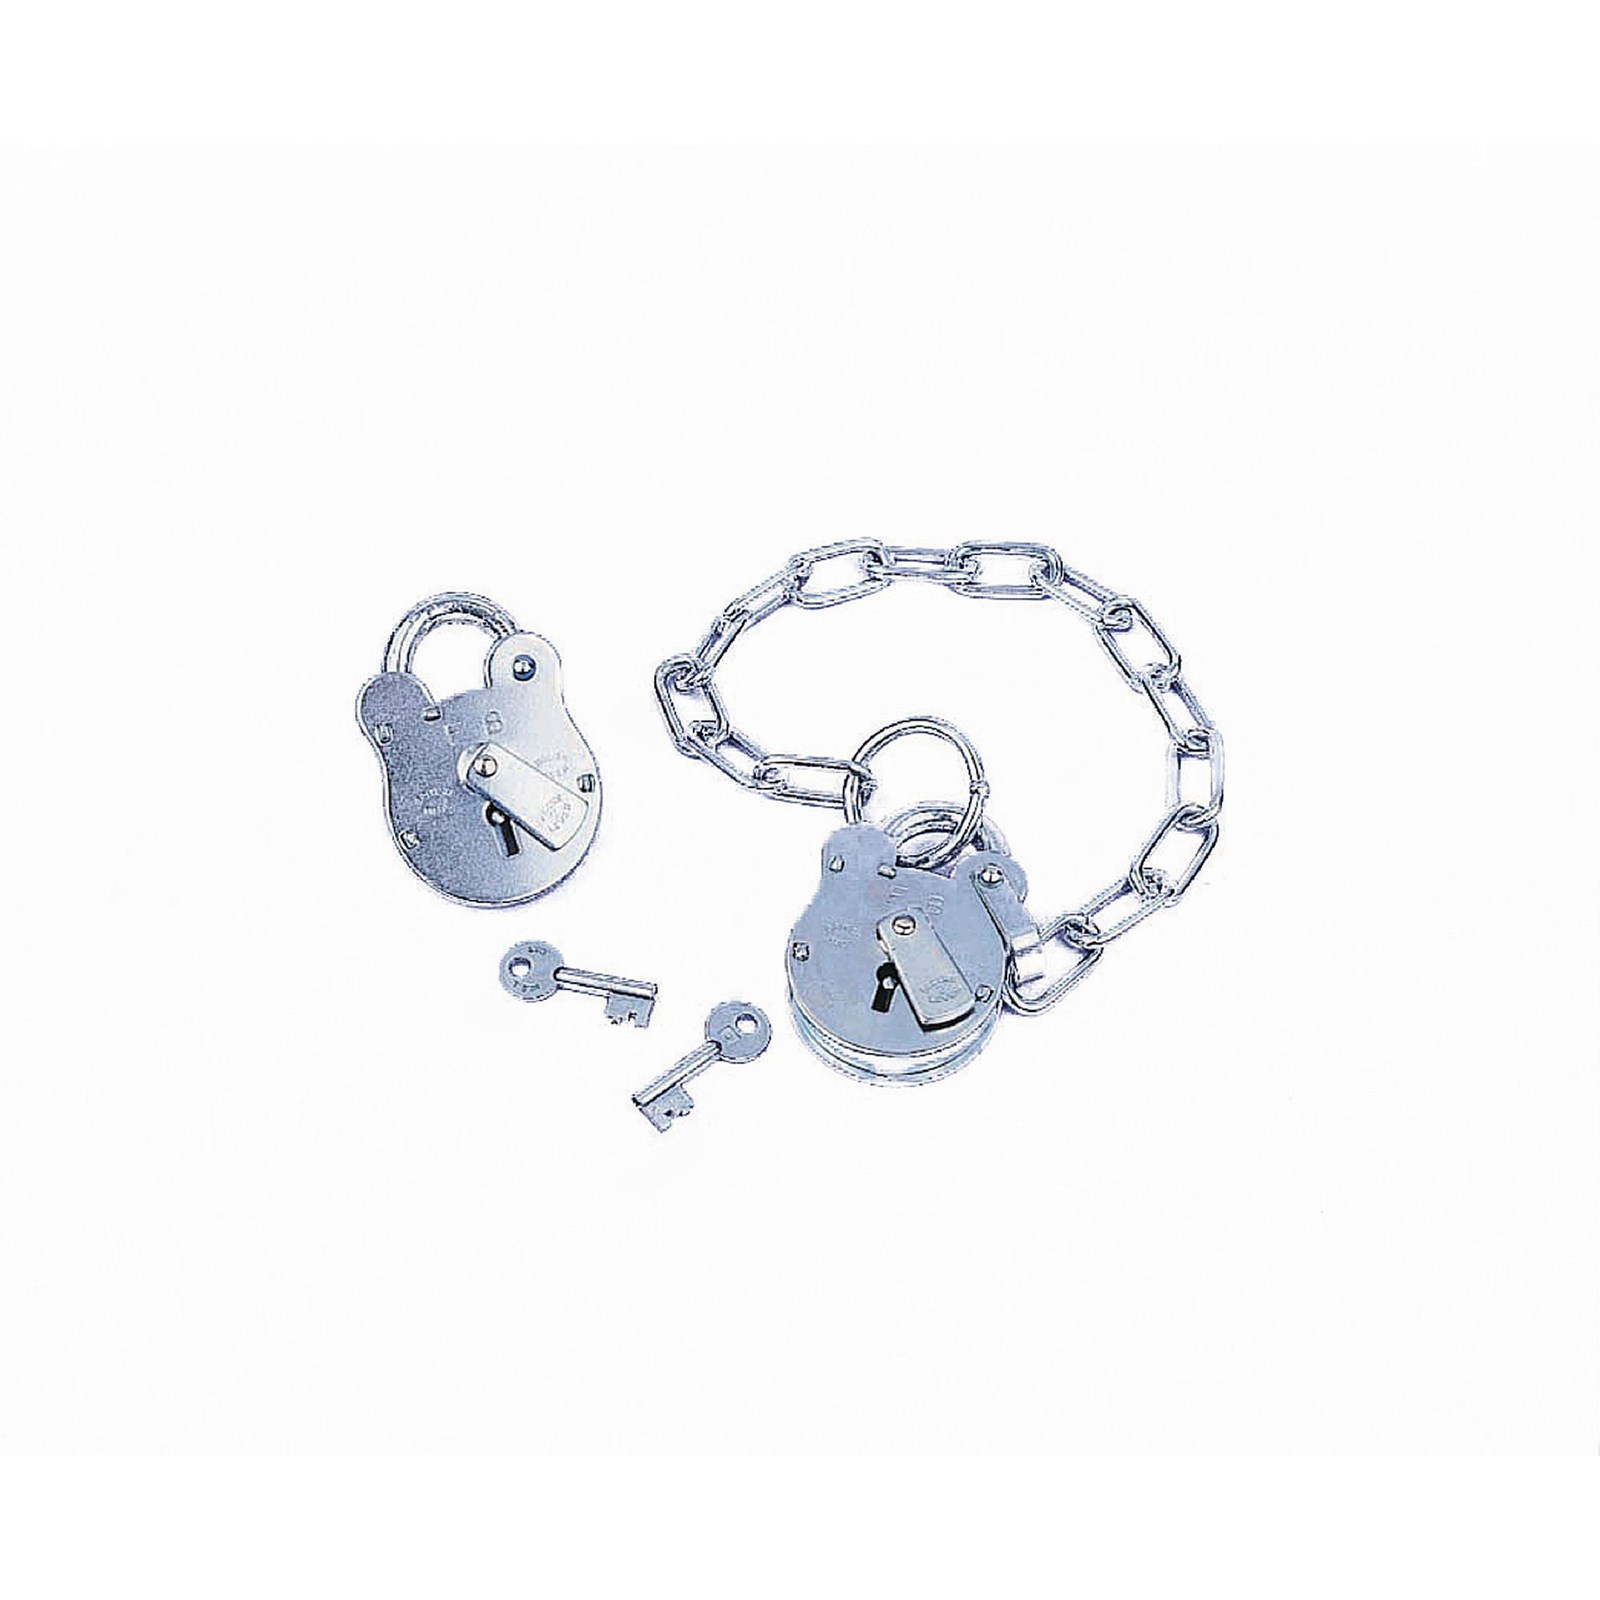 FB 51mm (2in) Padlock with Chain and Key - Padlock and chain only